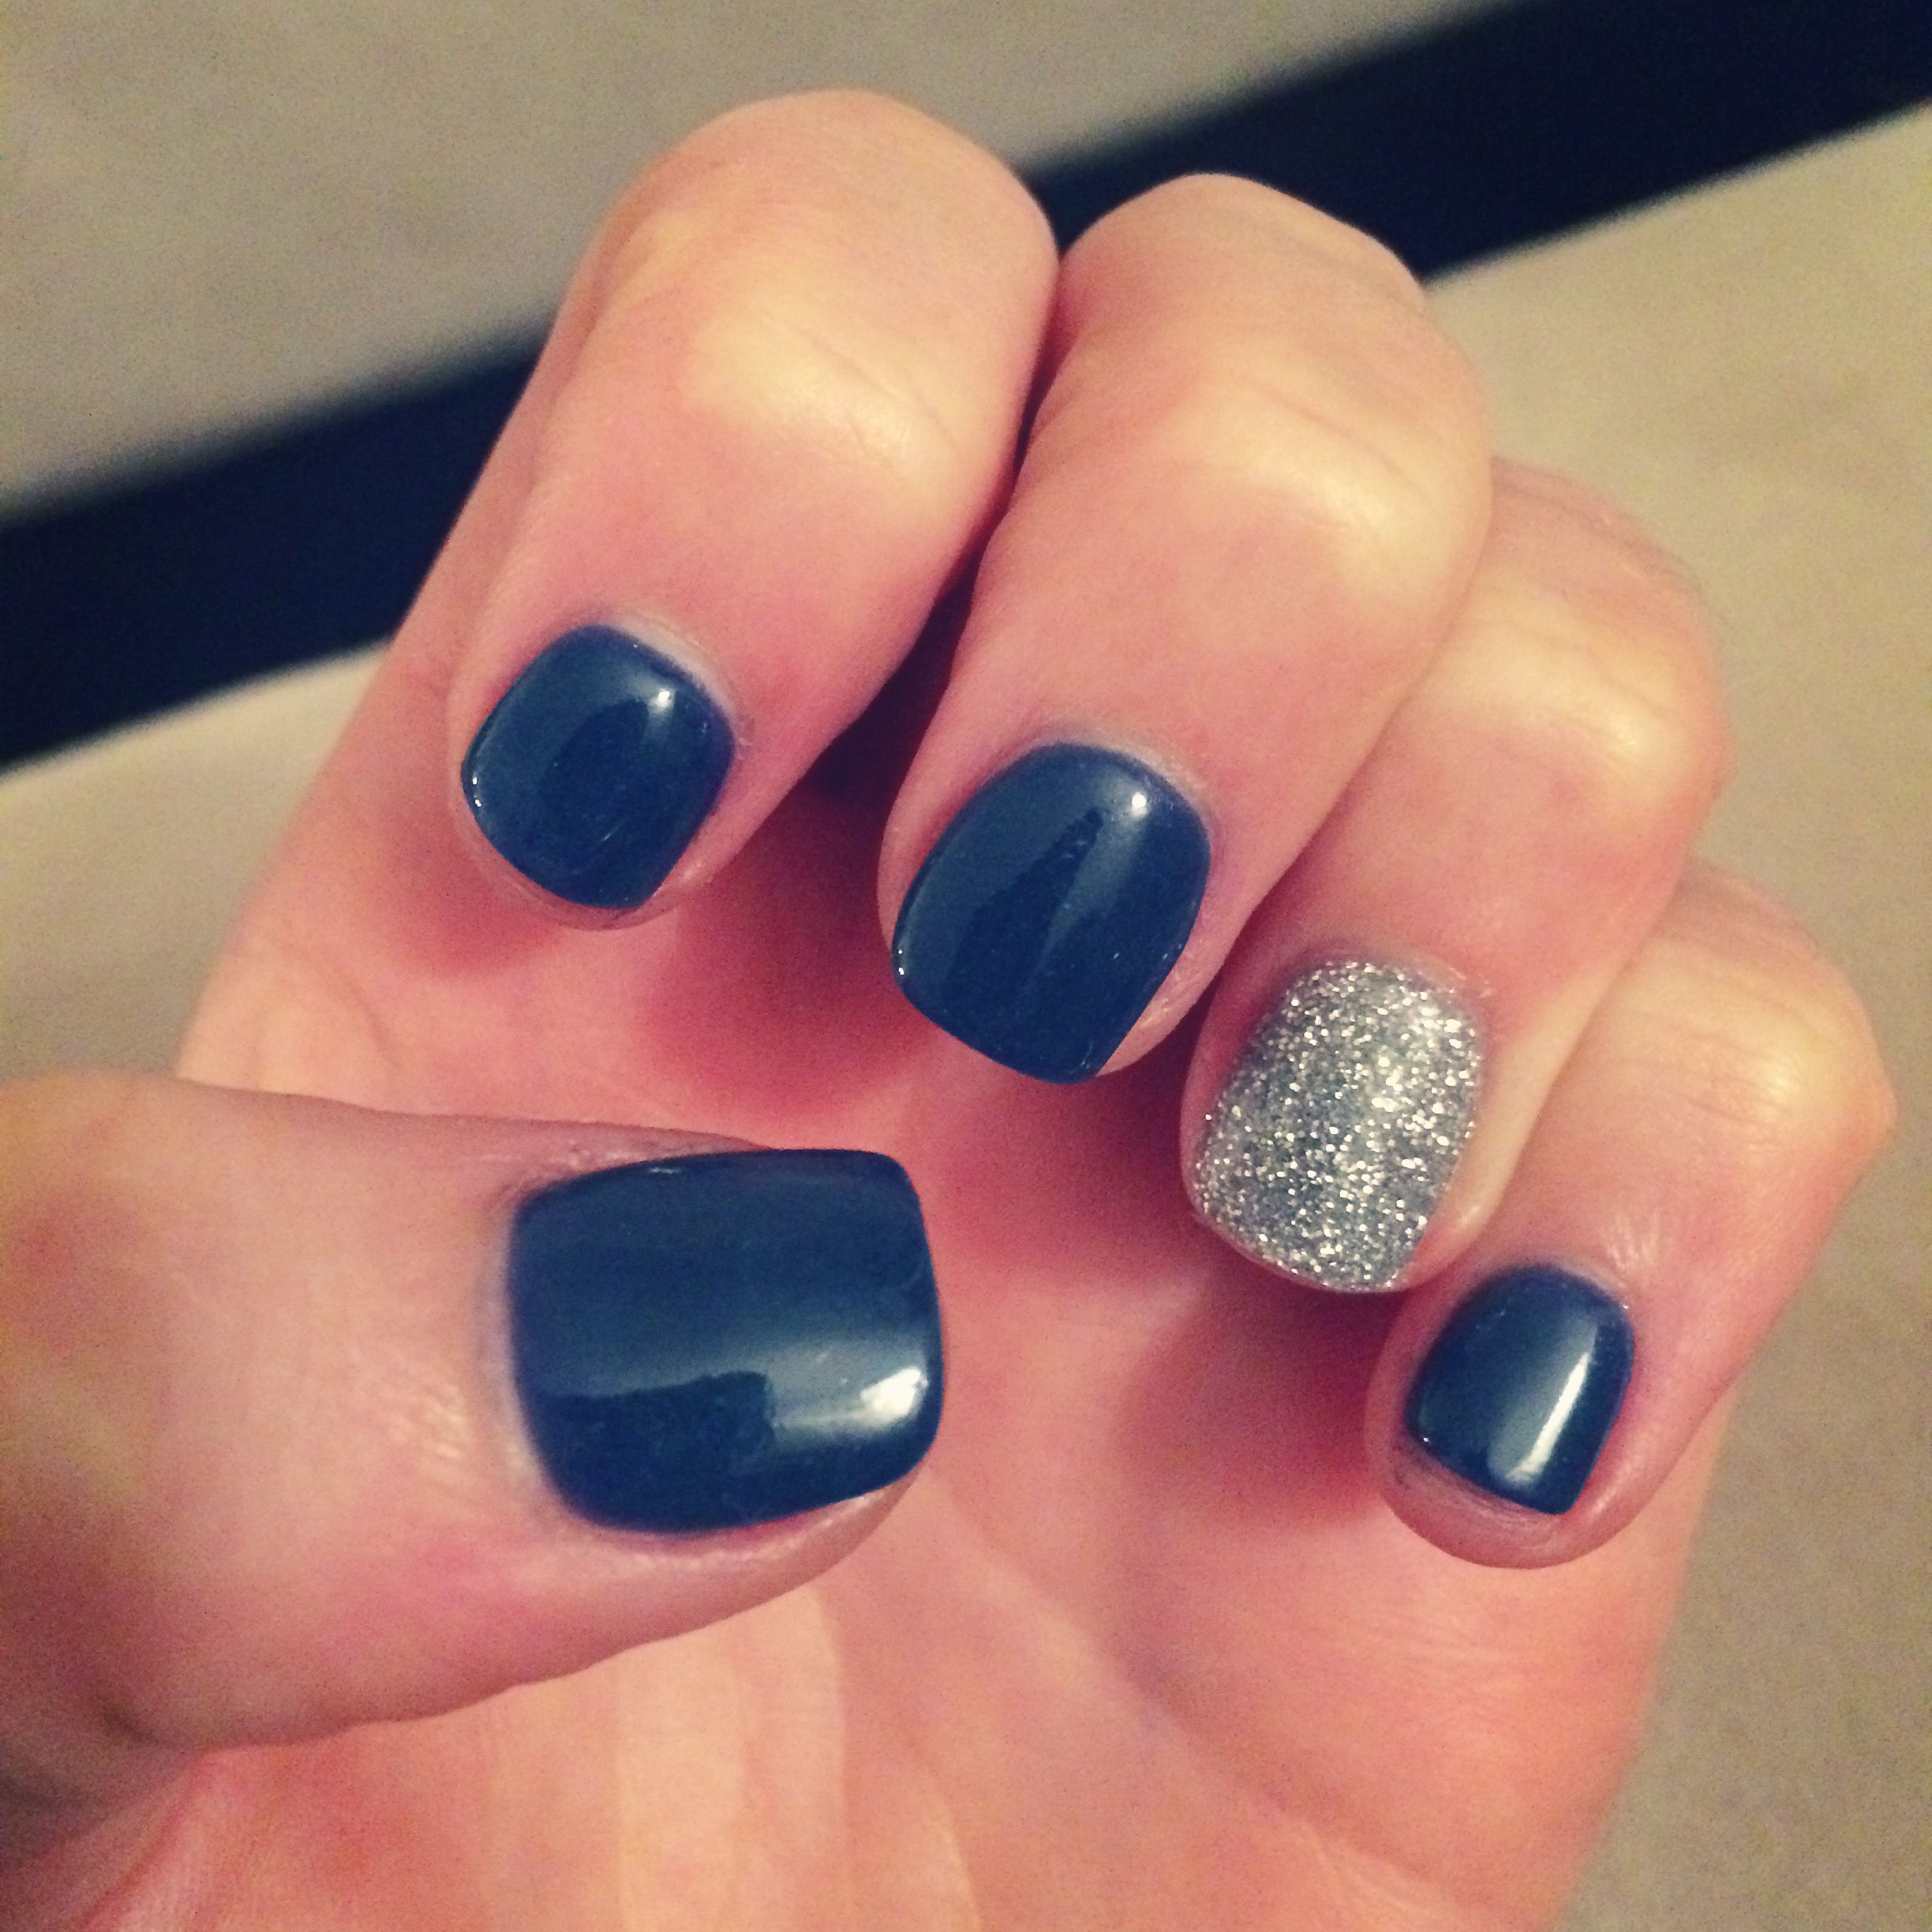 Nexgen Navy And Silver Glitter Nails For The Winter With Images